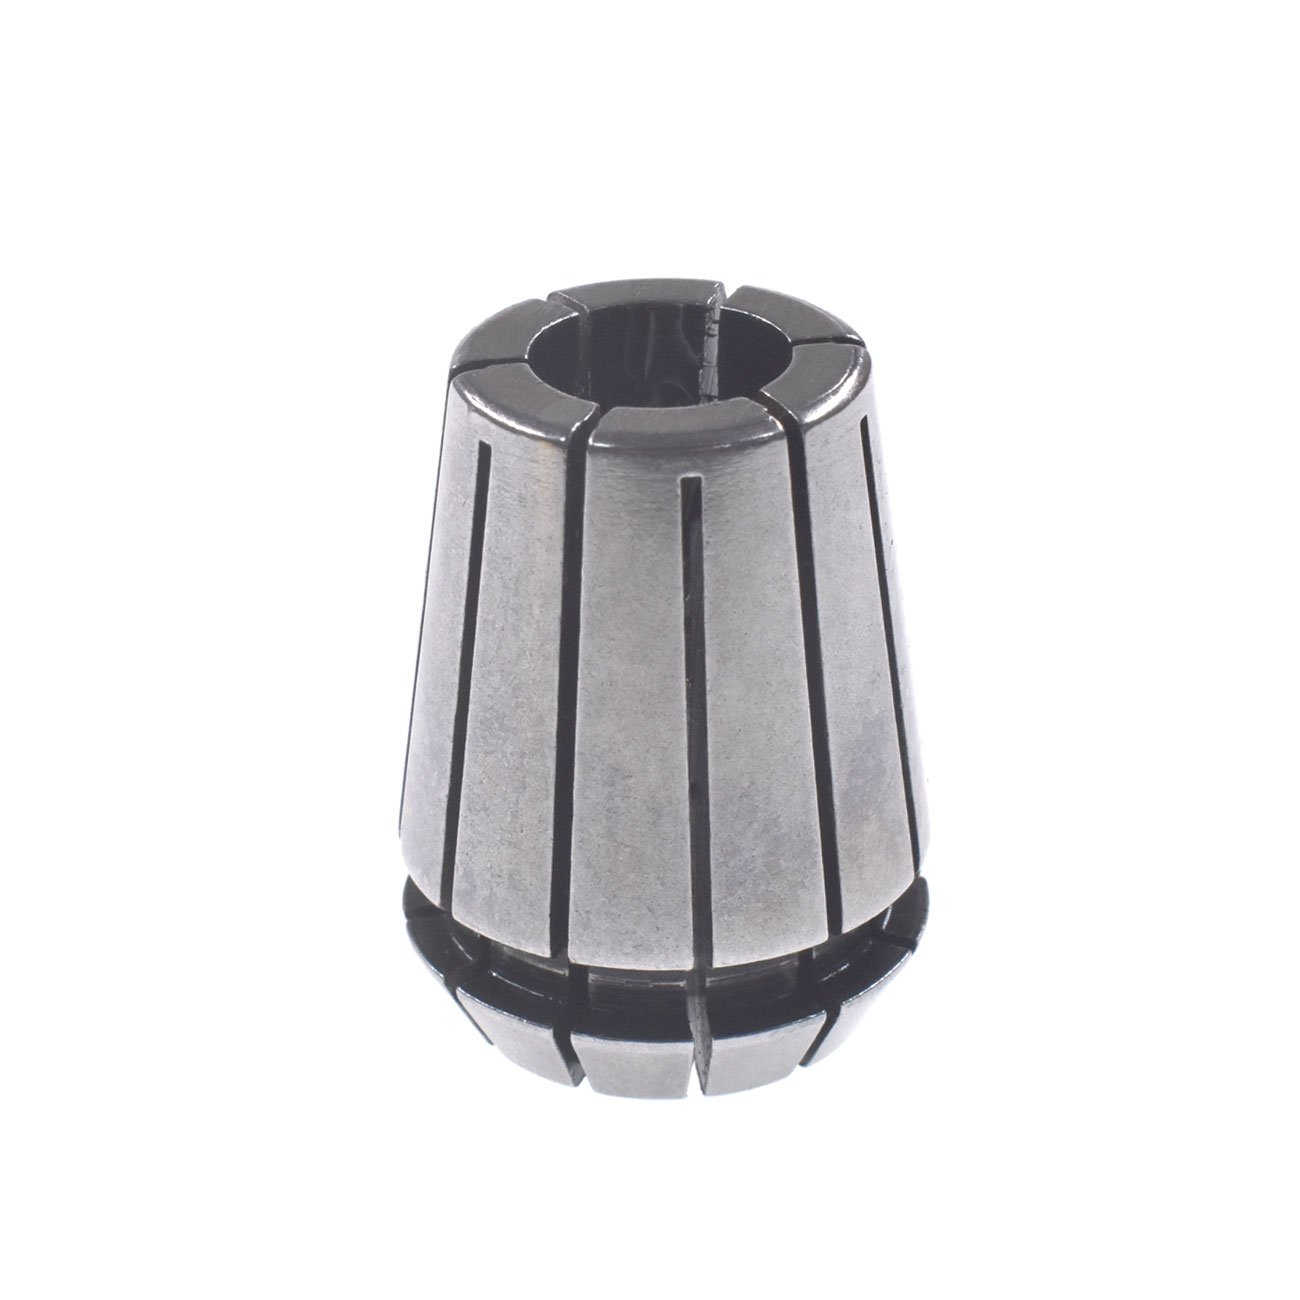 Wenyu 5mm Super precision ER16 collet For CNC milling lathe tool and spindle motor